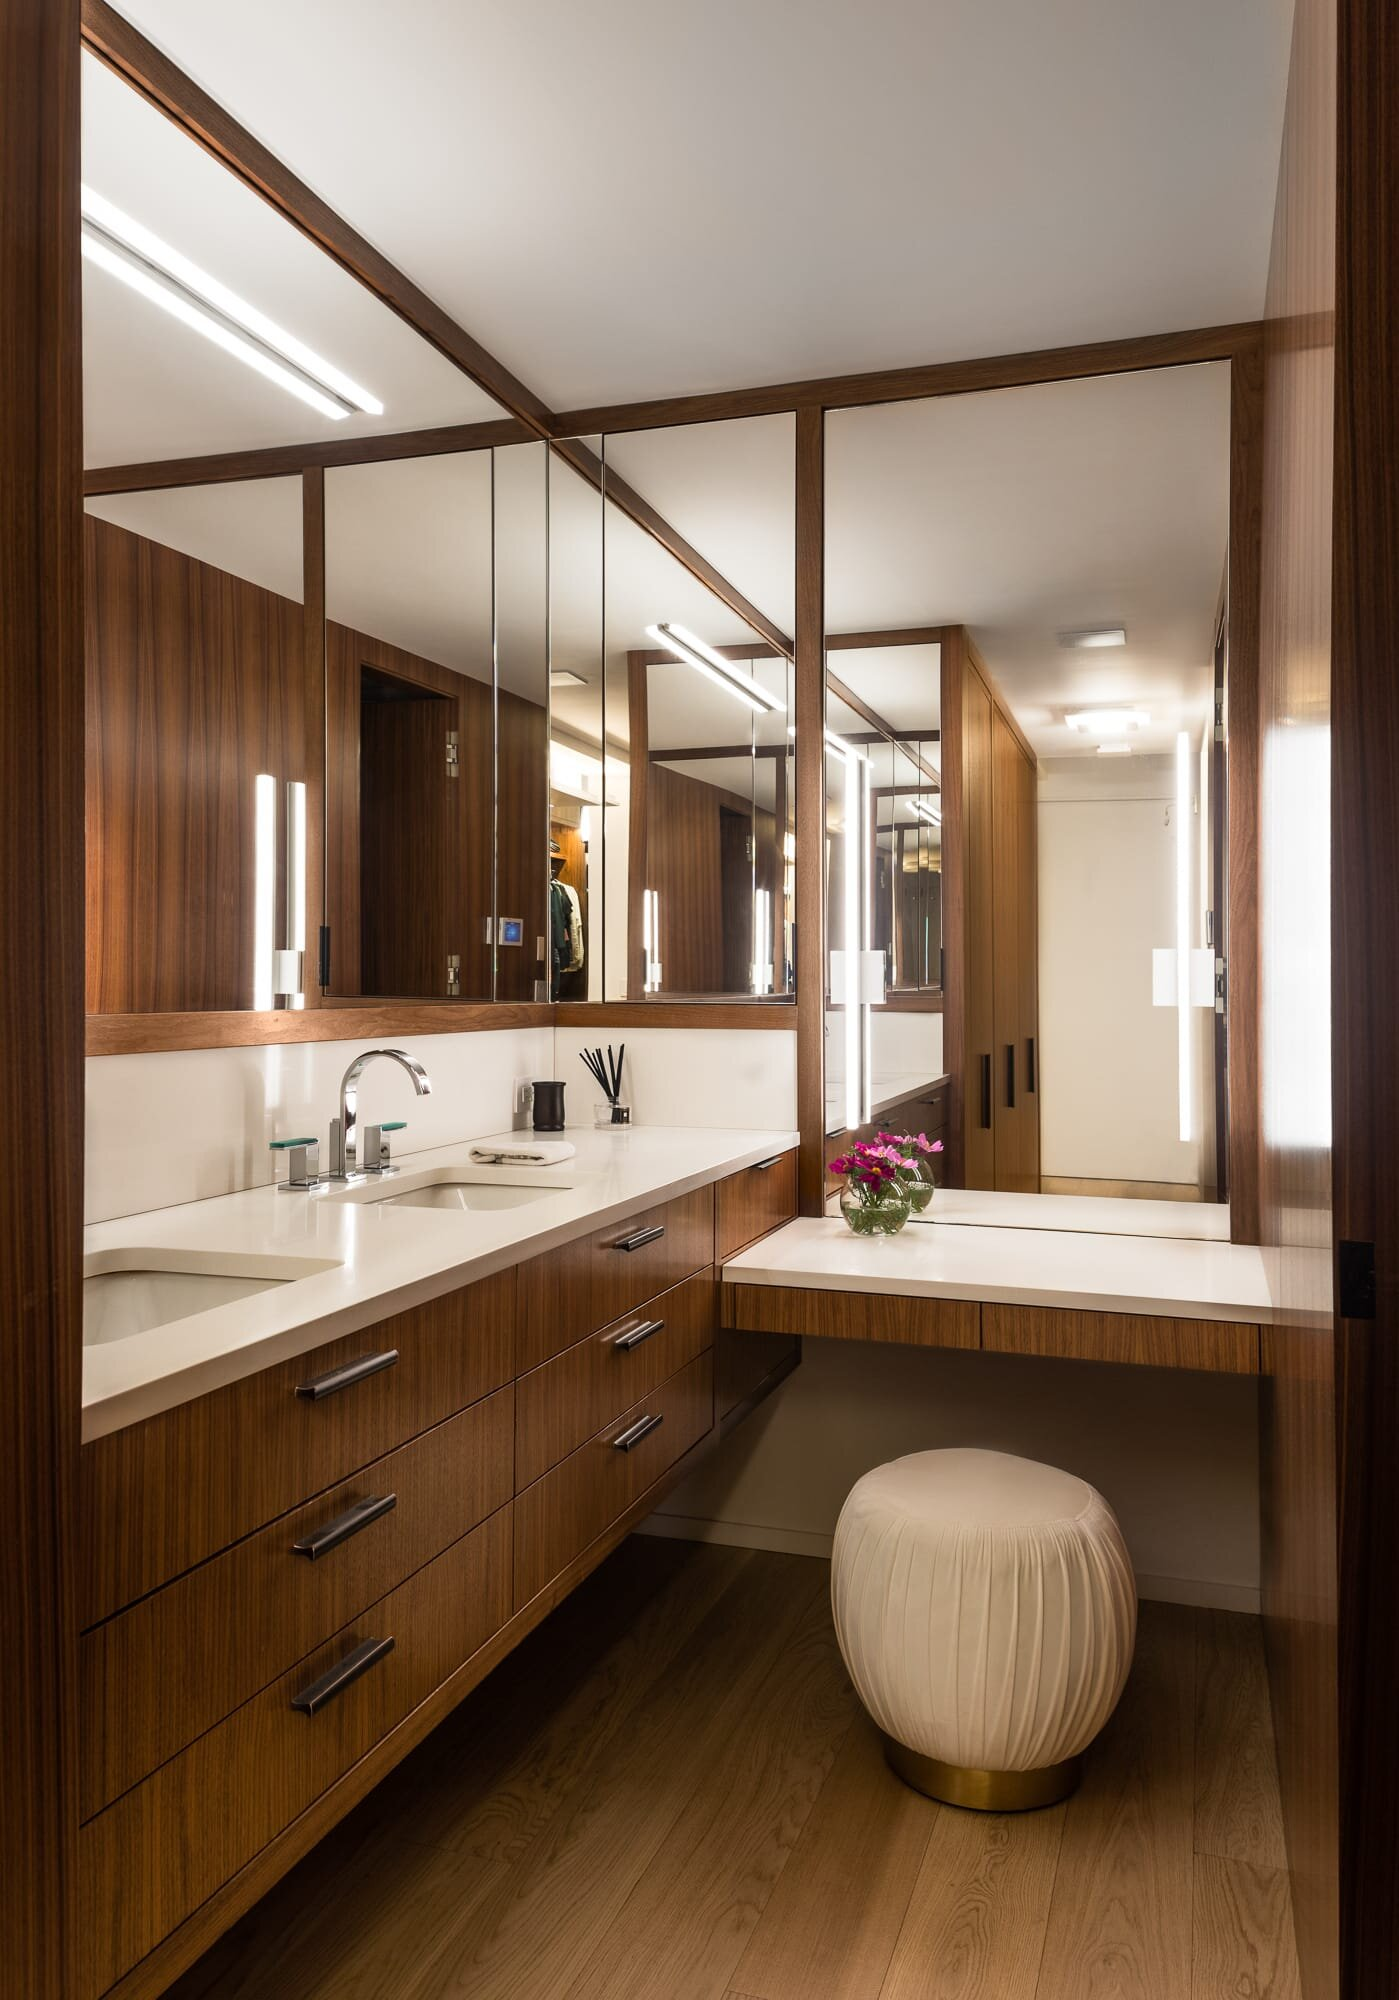 Walk in closet designed by Andrew Wilkinson Architect